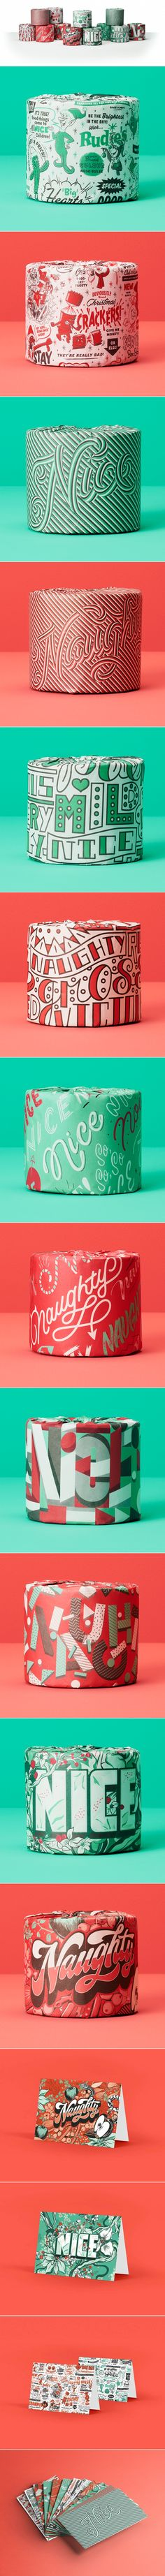 Who Gives a Crap Has Come Out With Toilet Paper Rolls You'd Actually Want to Gift — The Dieline | Packaging & Branding Design & Innovation News